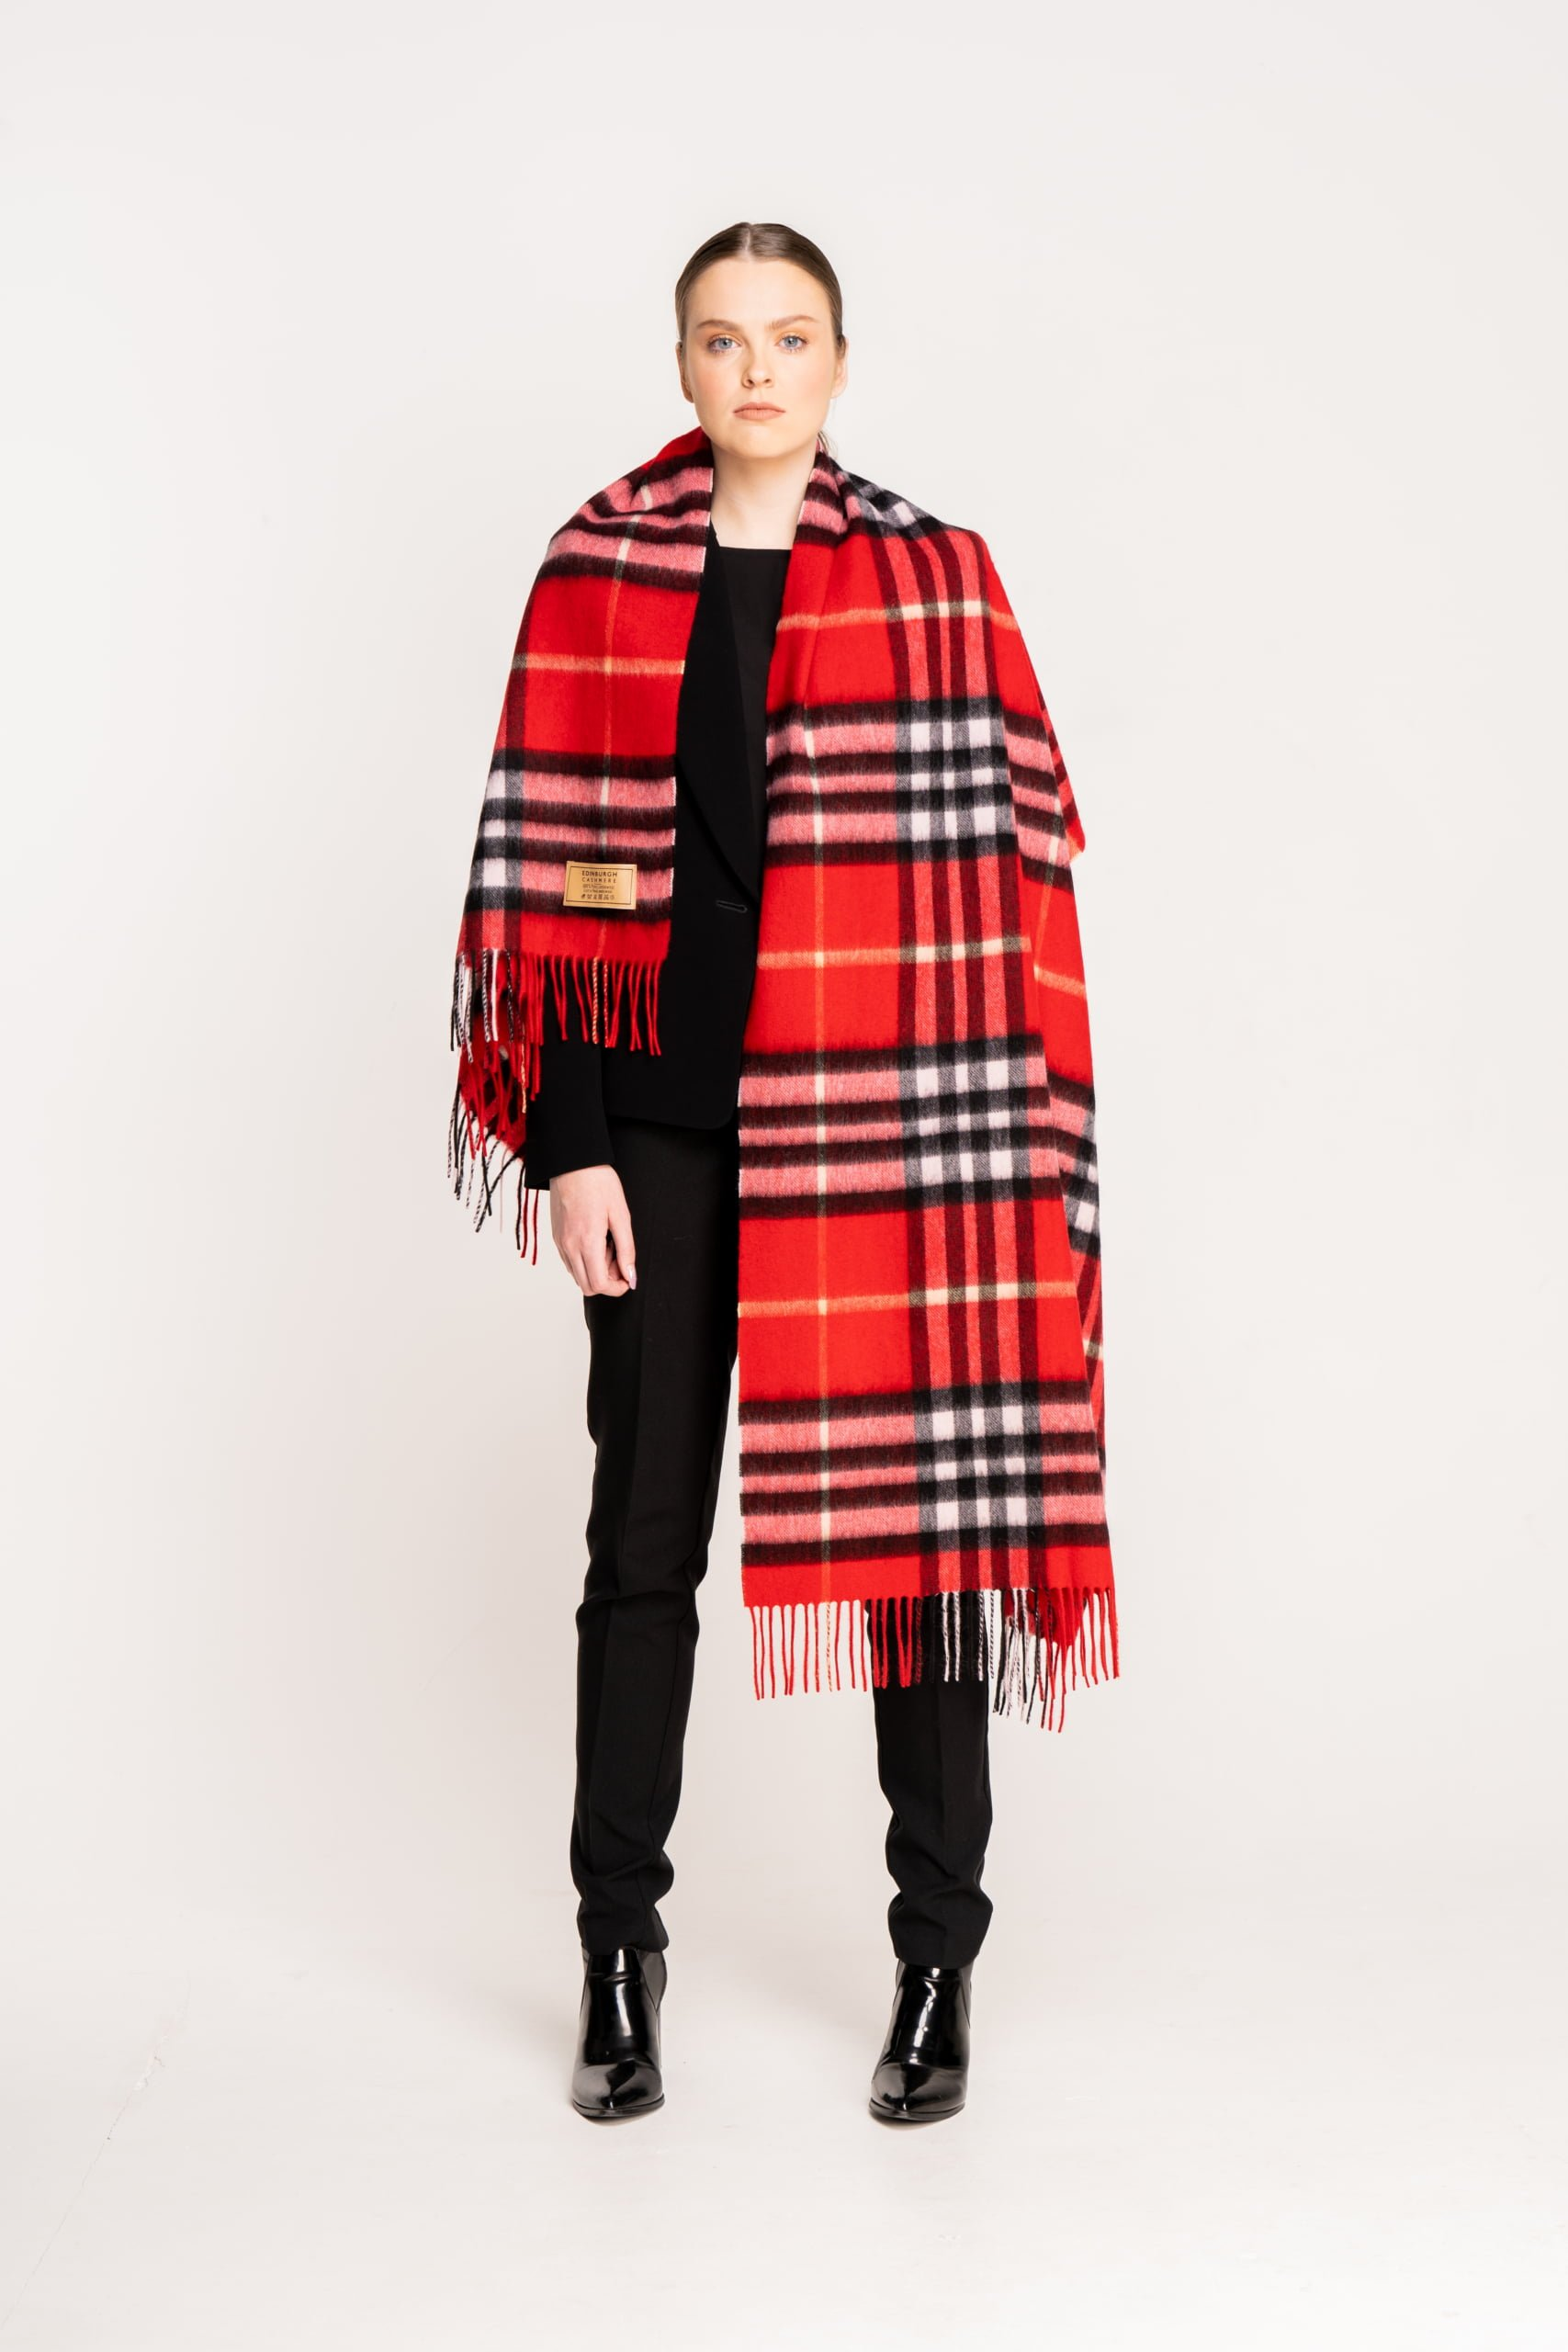 G 1 Edinburgh Cashmere Red Check Lambswool Stole  scaled